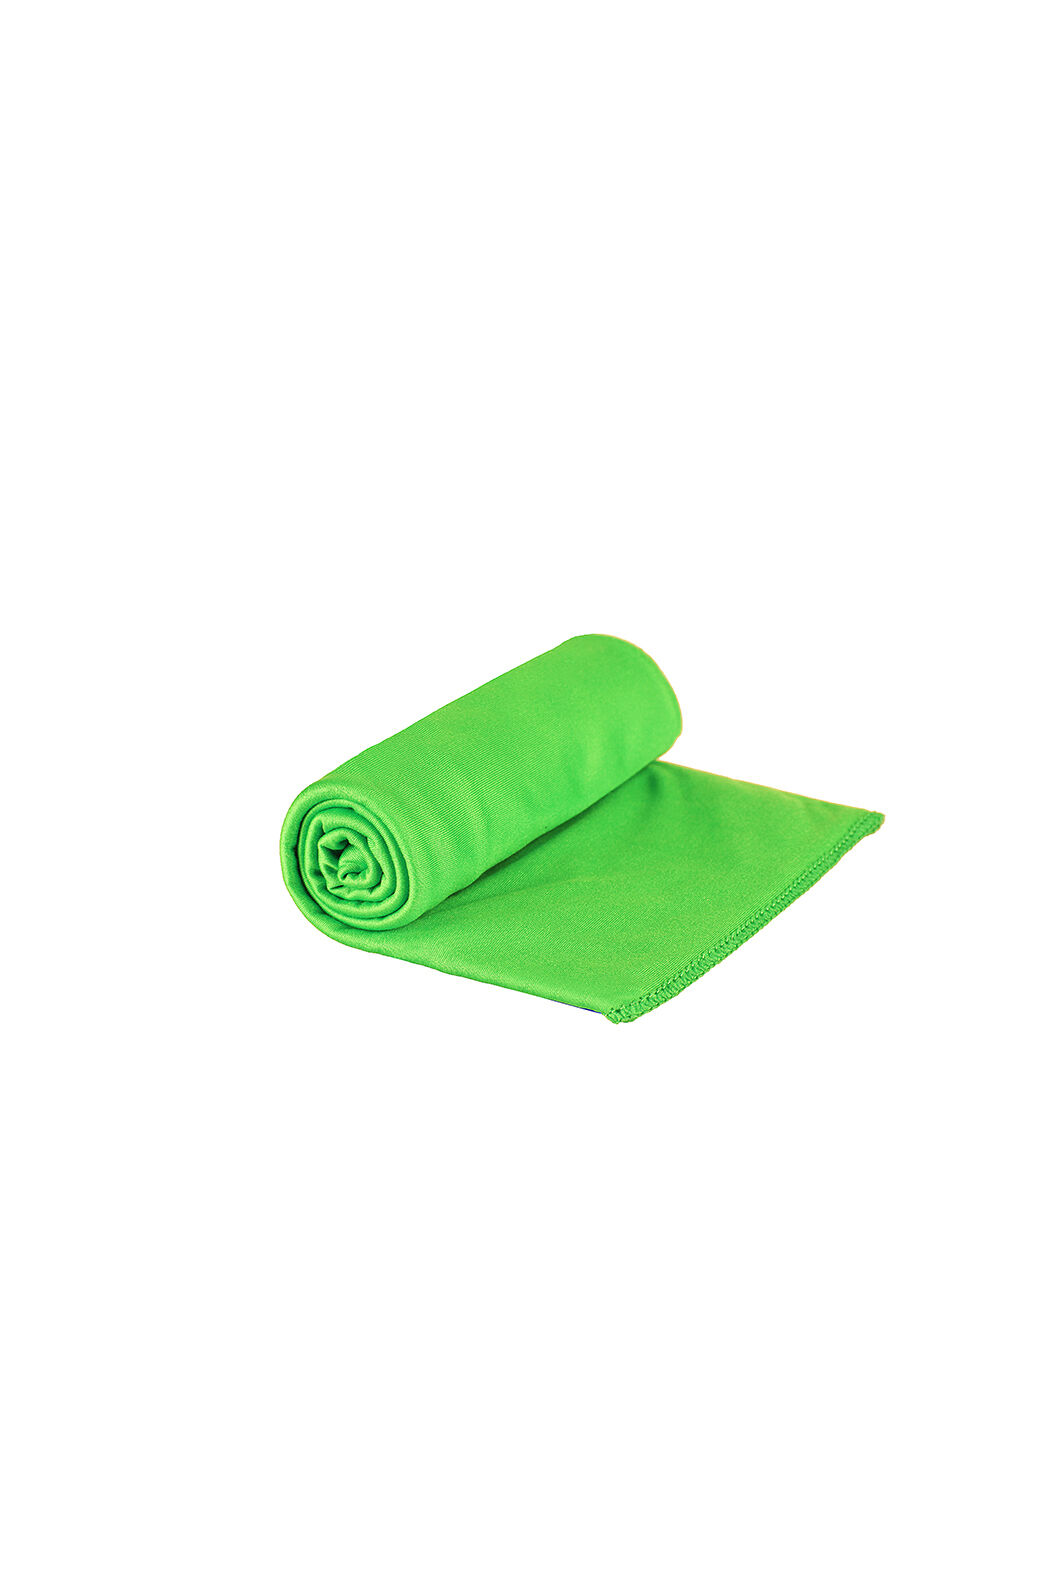 Sea to Summit Pocket Towel Lime, None, hi-res